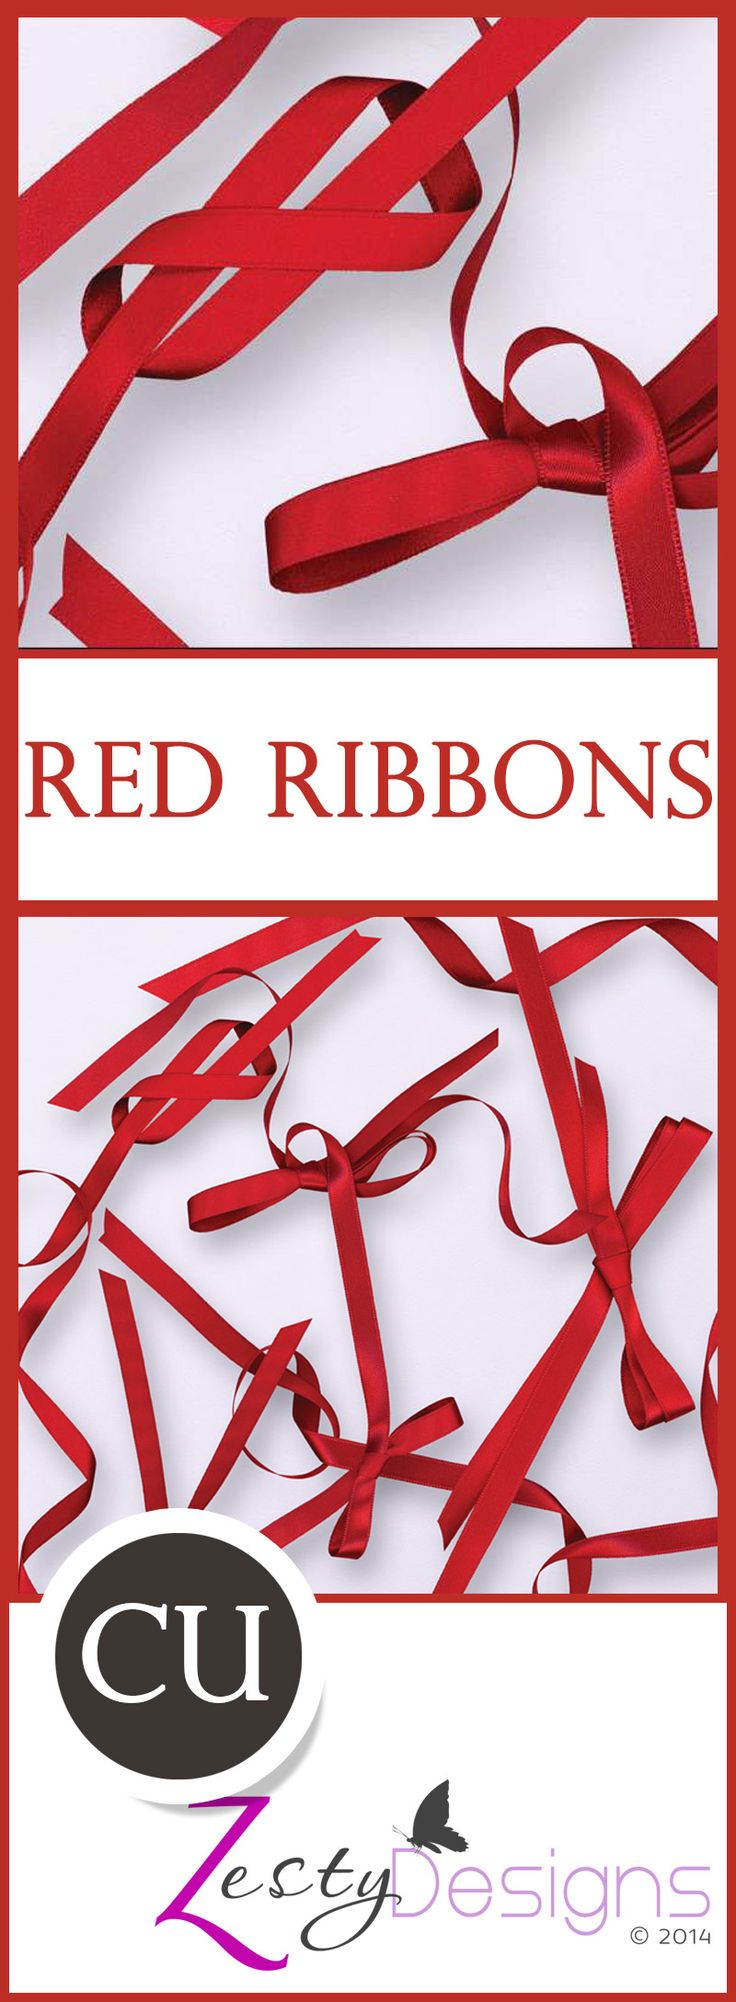 Ribbons always add that extra little curl, shimmer or shine to a digital scrapbooking kit or page. I think ribbons are one of the essentials in a designer's element arsenal.This pack has four long red ribbons, one tie, and one bow. This pack has four long red ribbons, one tie, and one bow.